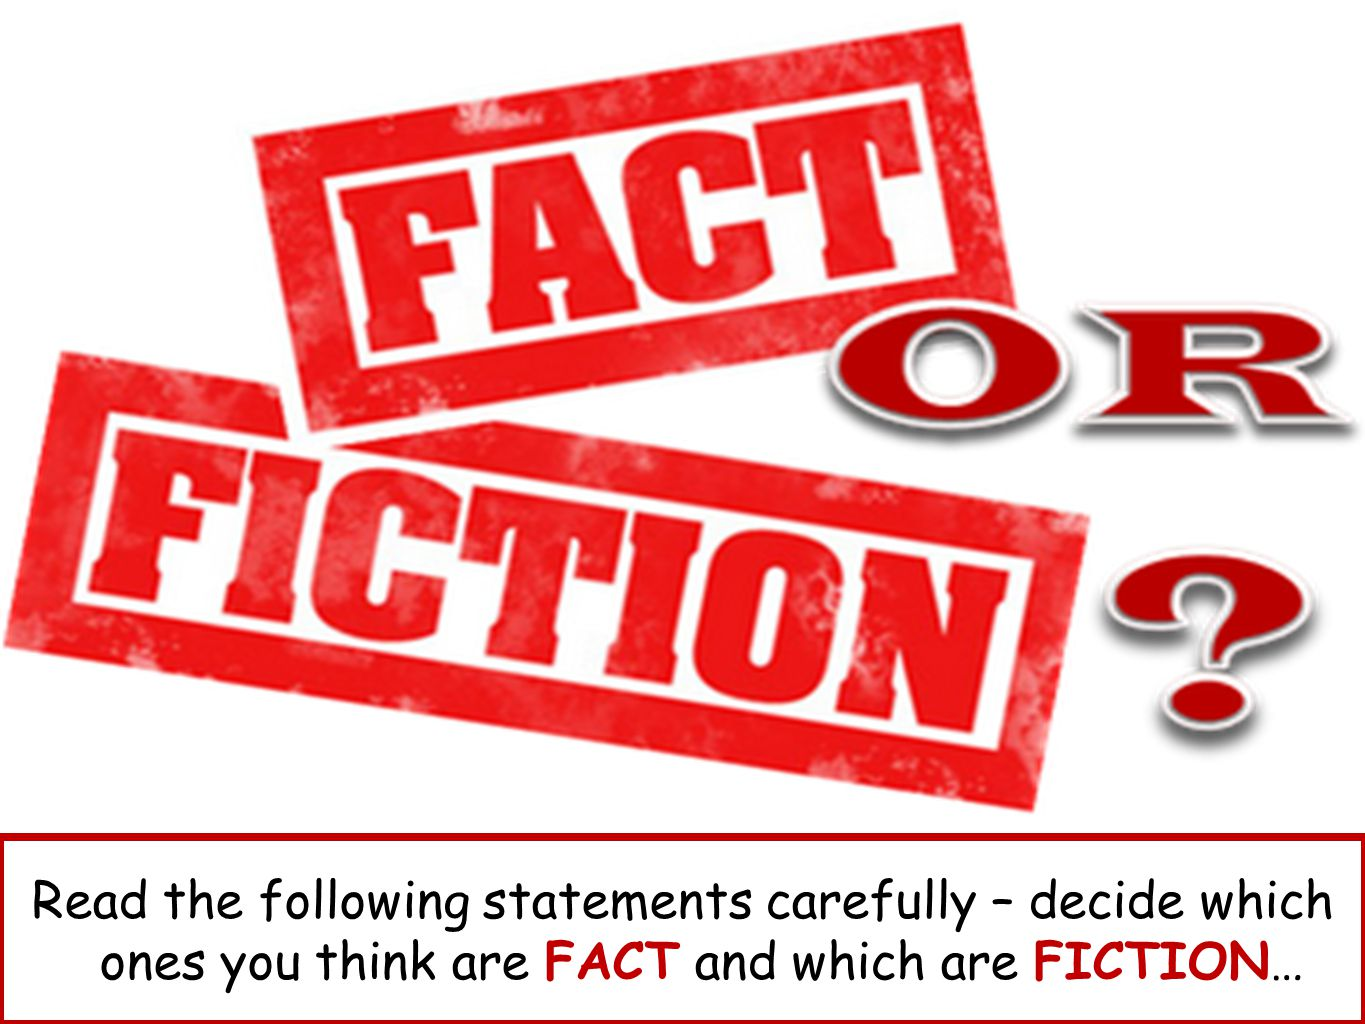 Read the following statements carefully – decide which ones you think are FACT and which are FICTION…